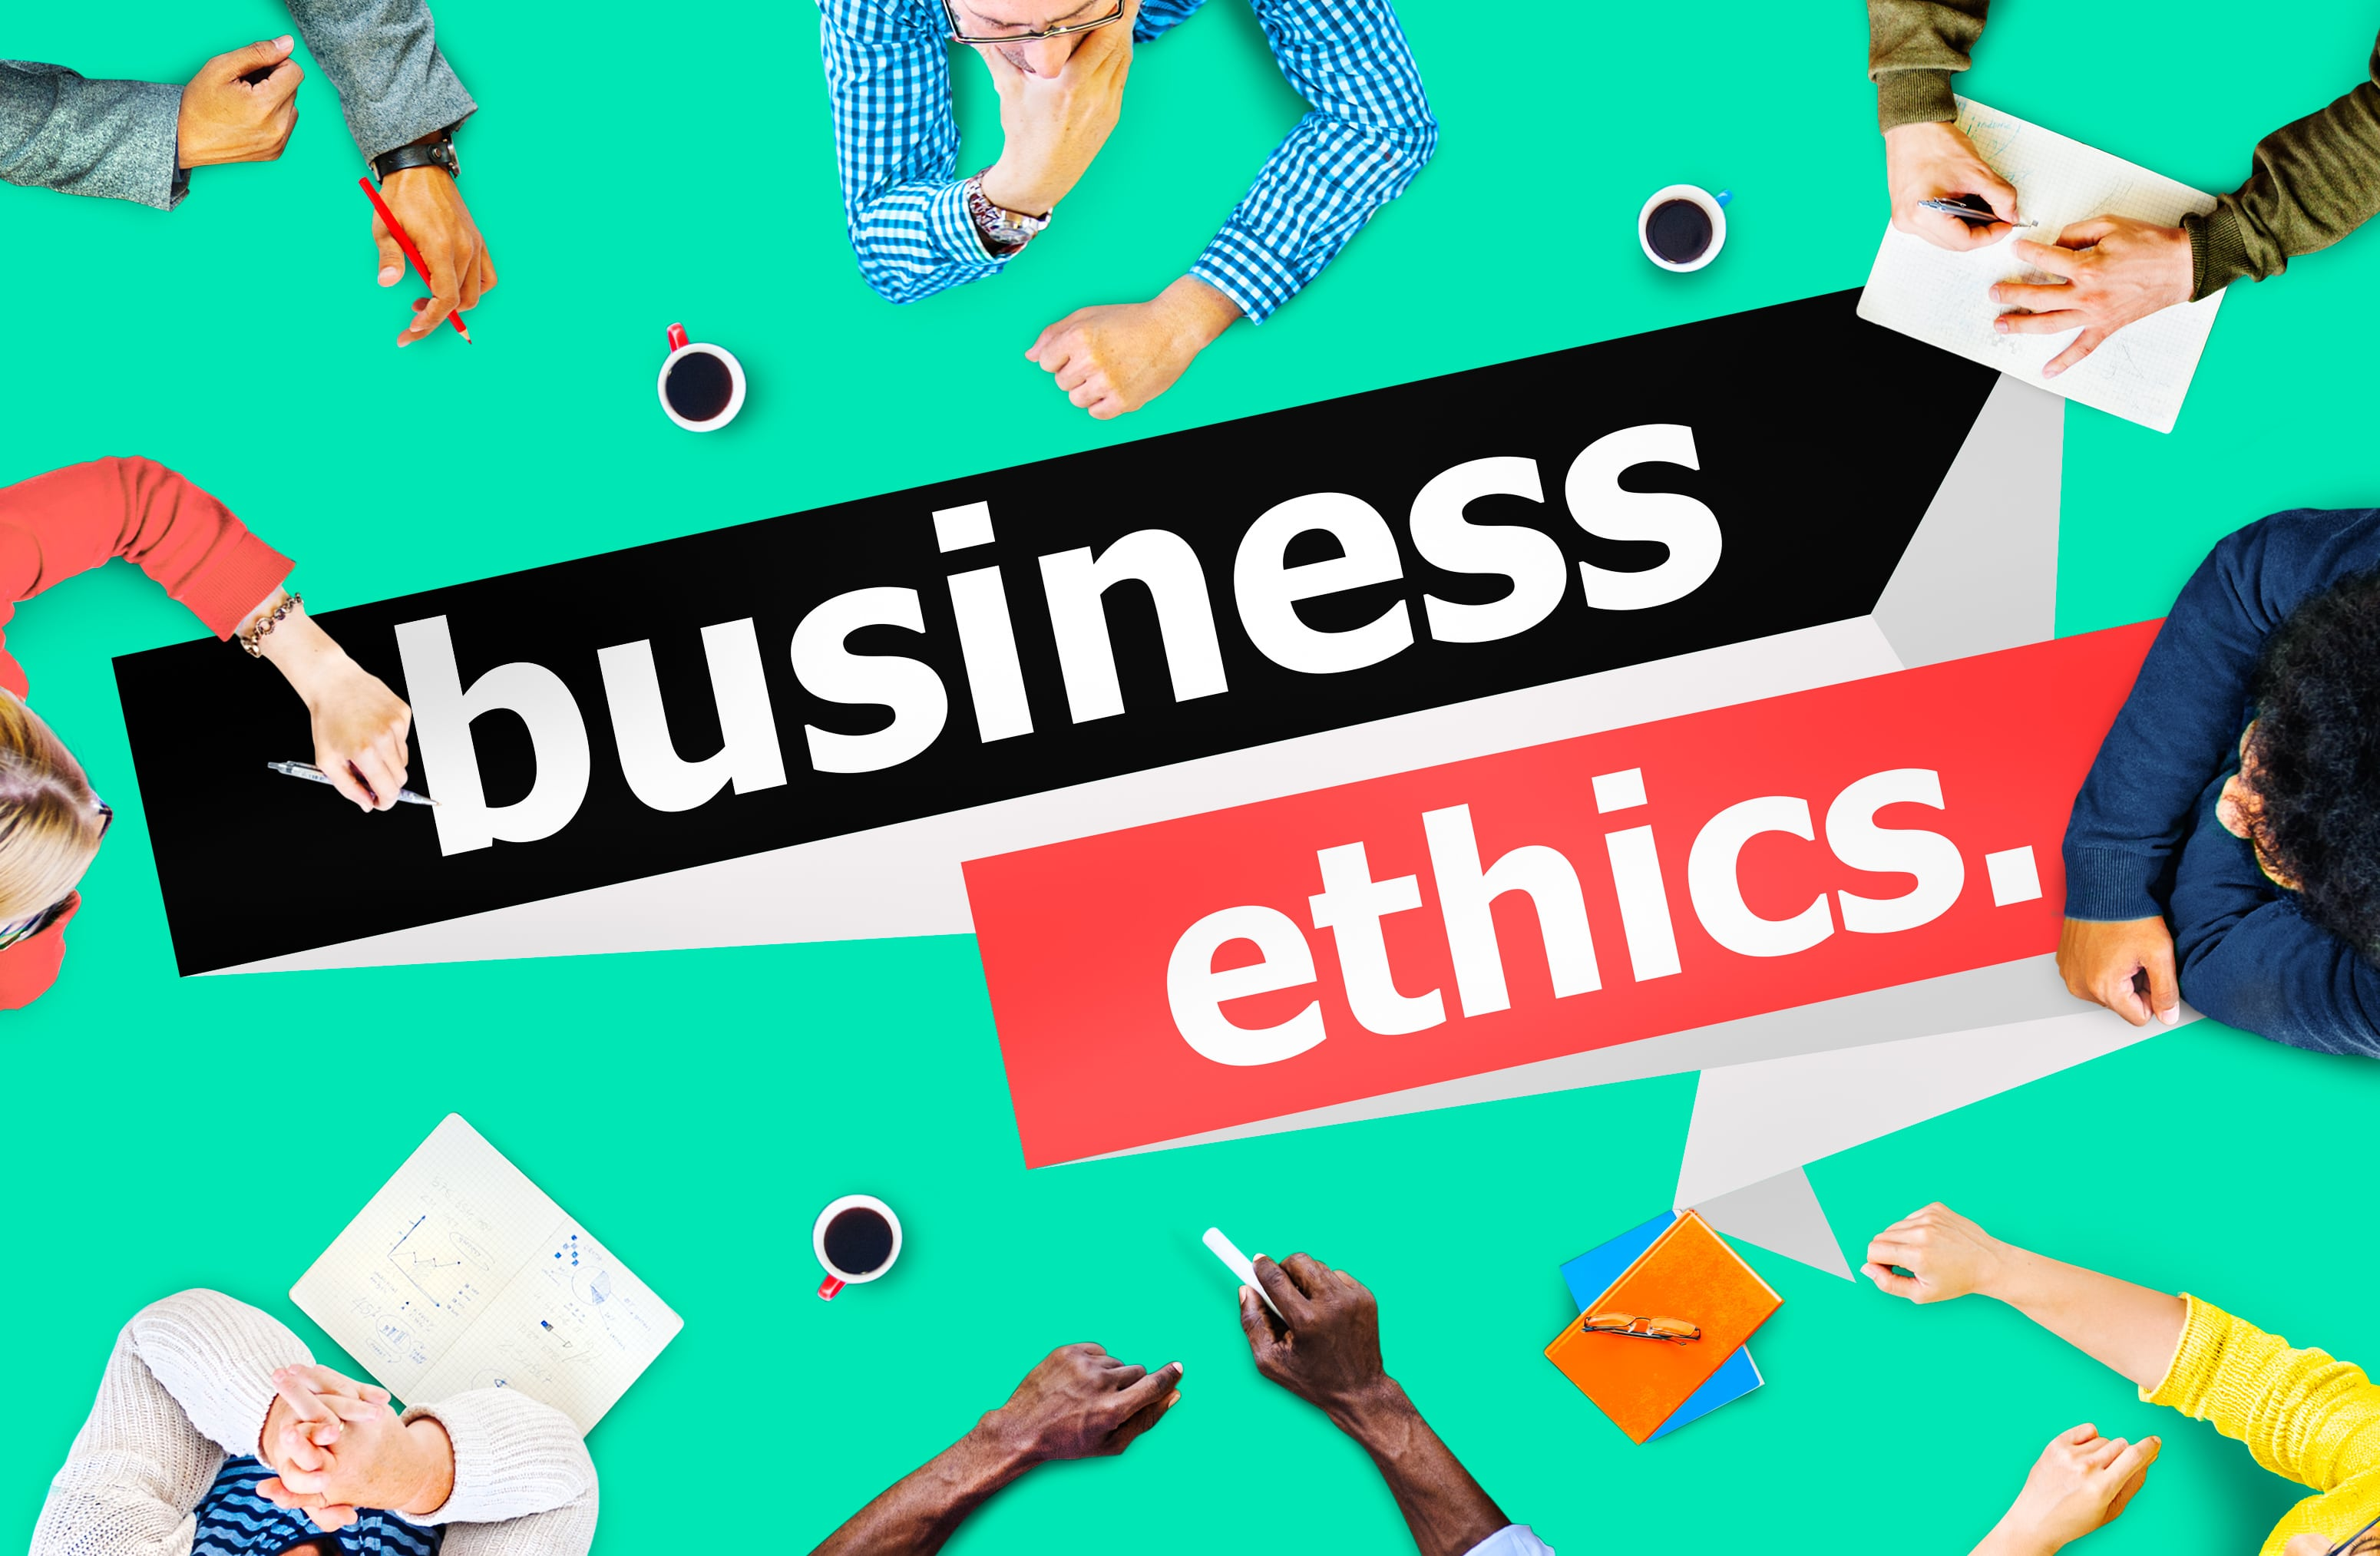 culture and ethical values in business Business ethics - cultural values and personal ethics in business.